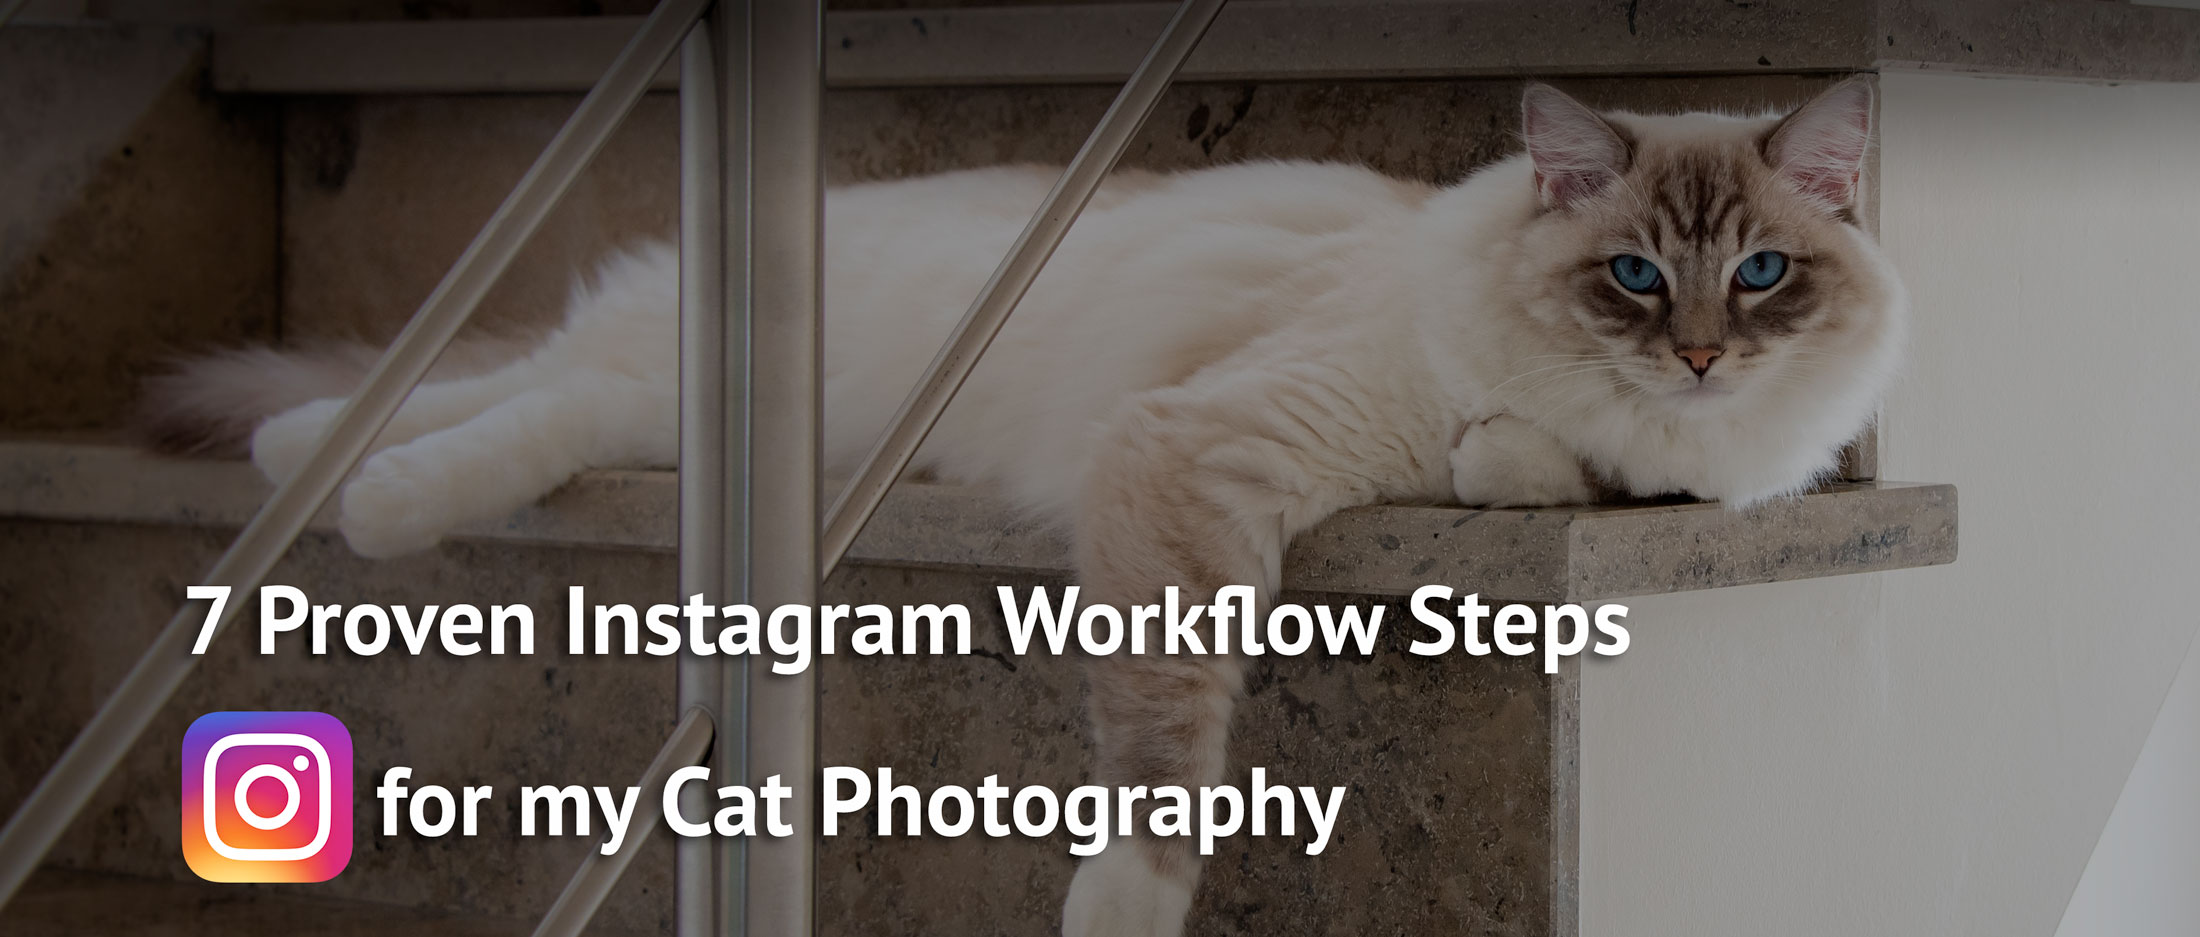 picture of ragdoll cat Casper lying on the stairs watching the camera as a model used as header photo for the blogpost 7 workflow steps for instagram cat photography